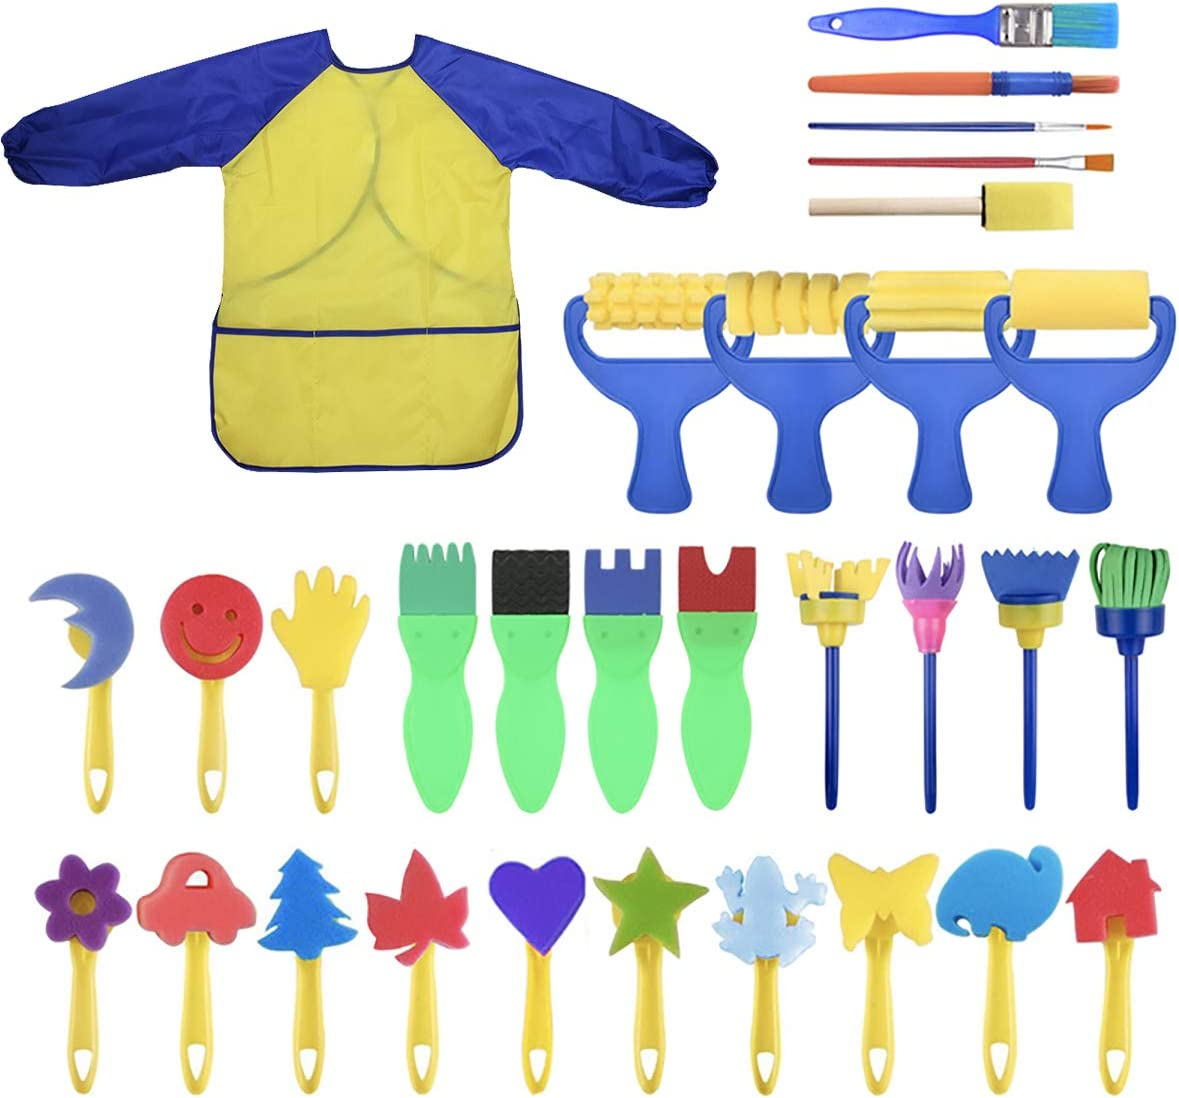 YallFairy Washable Paint Brushes Set for Toddler Kids Early Learning Toys Finger Paints sponges Art Supplies Gifts -nontoxic-100% Baby Safe: Home & Kitchen